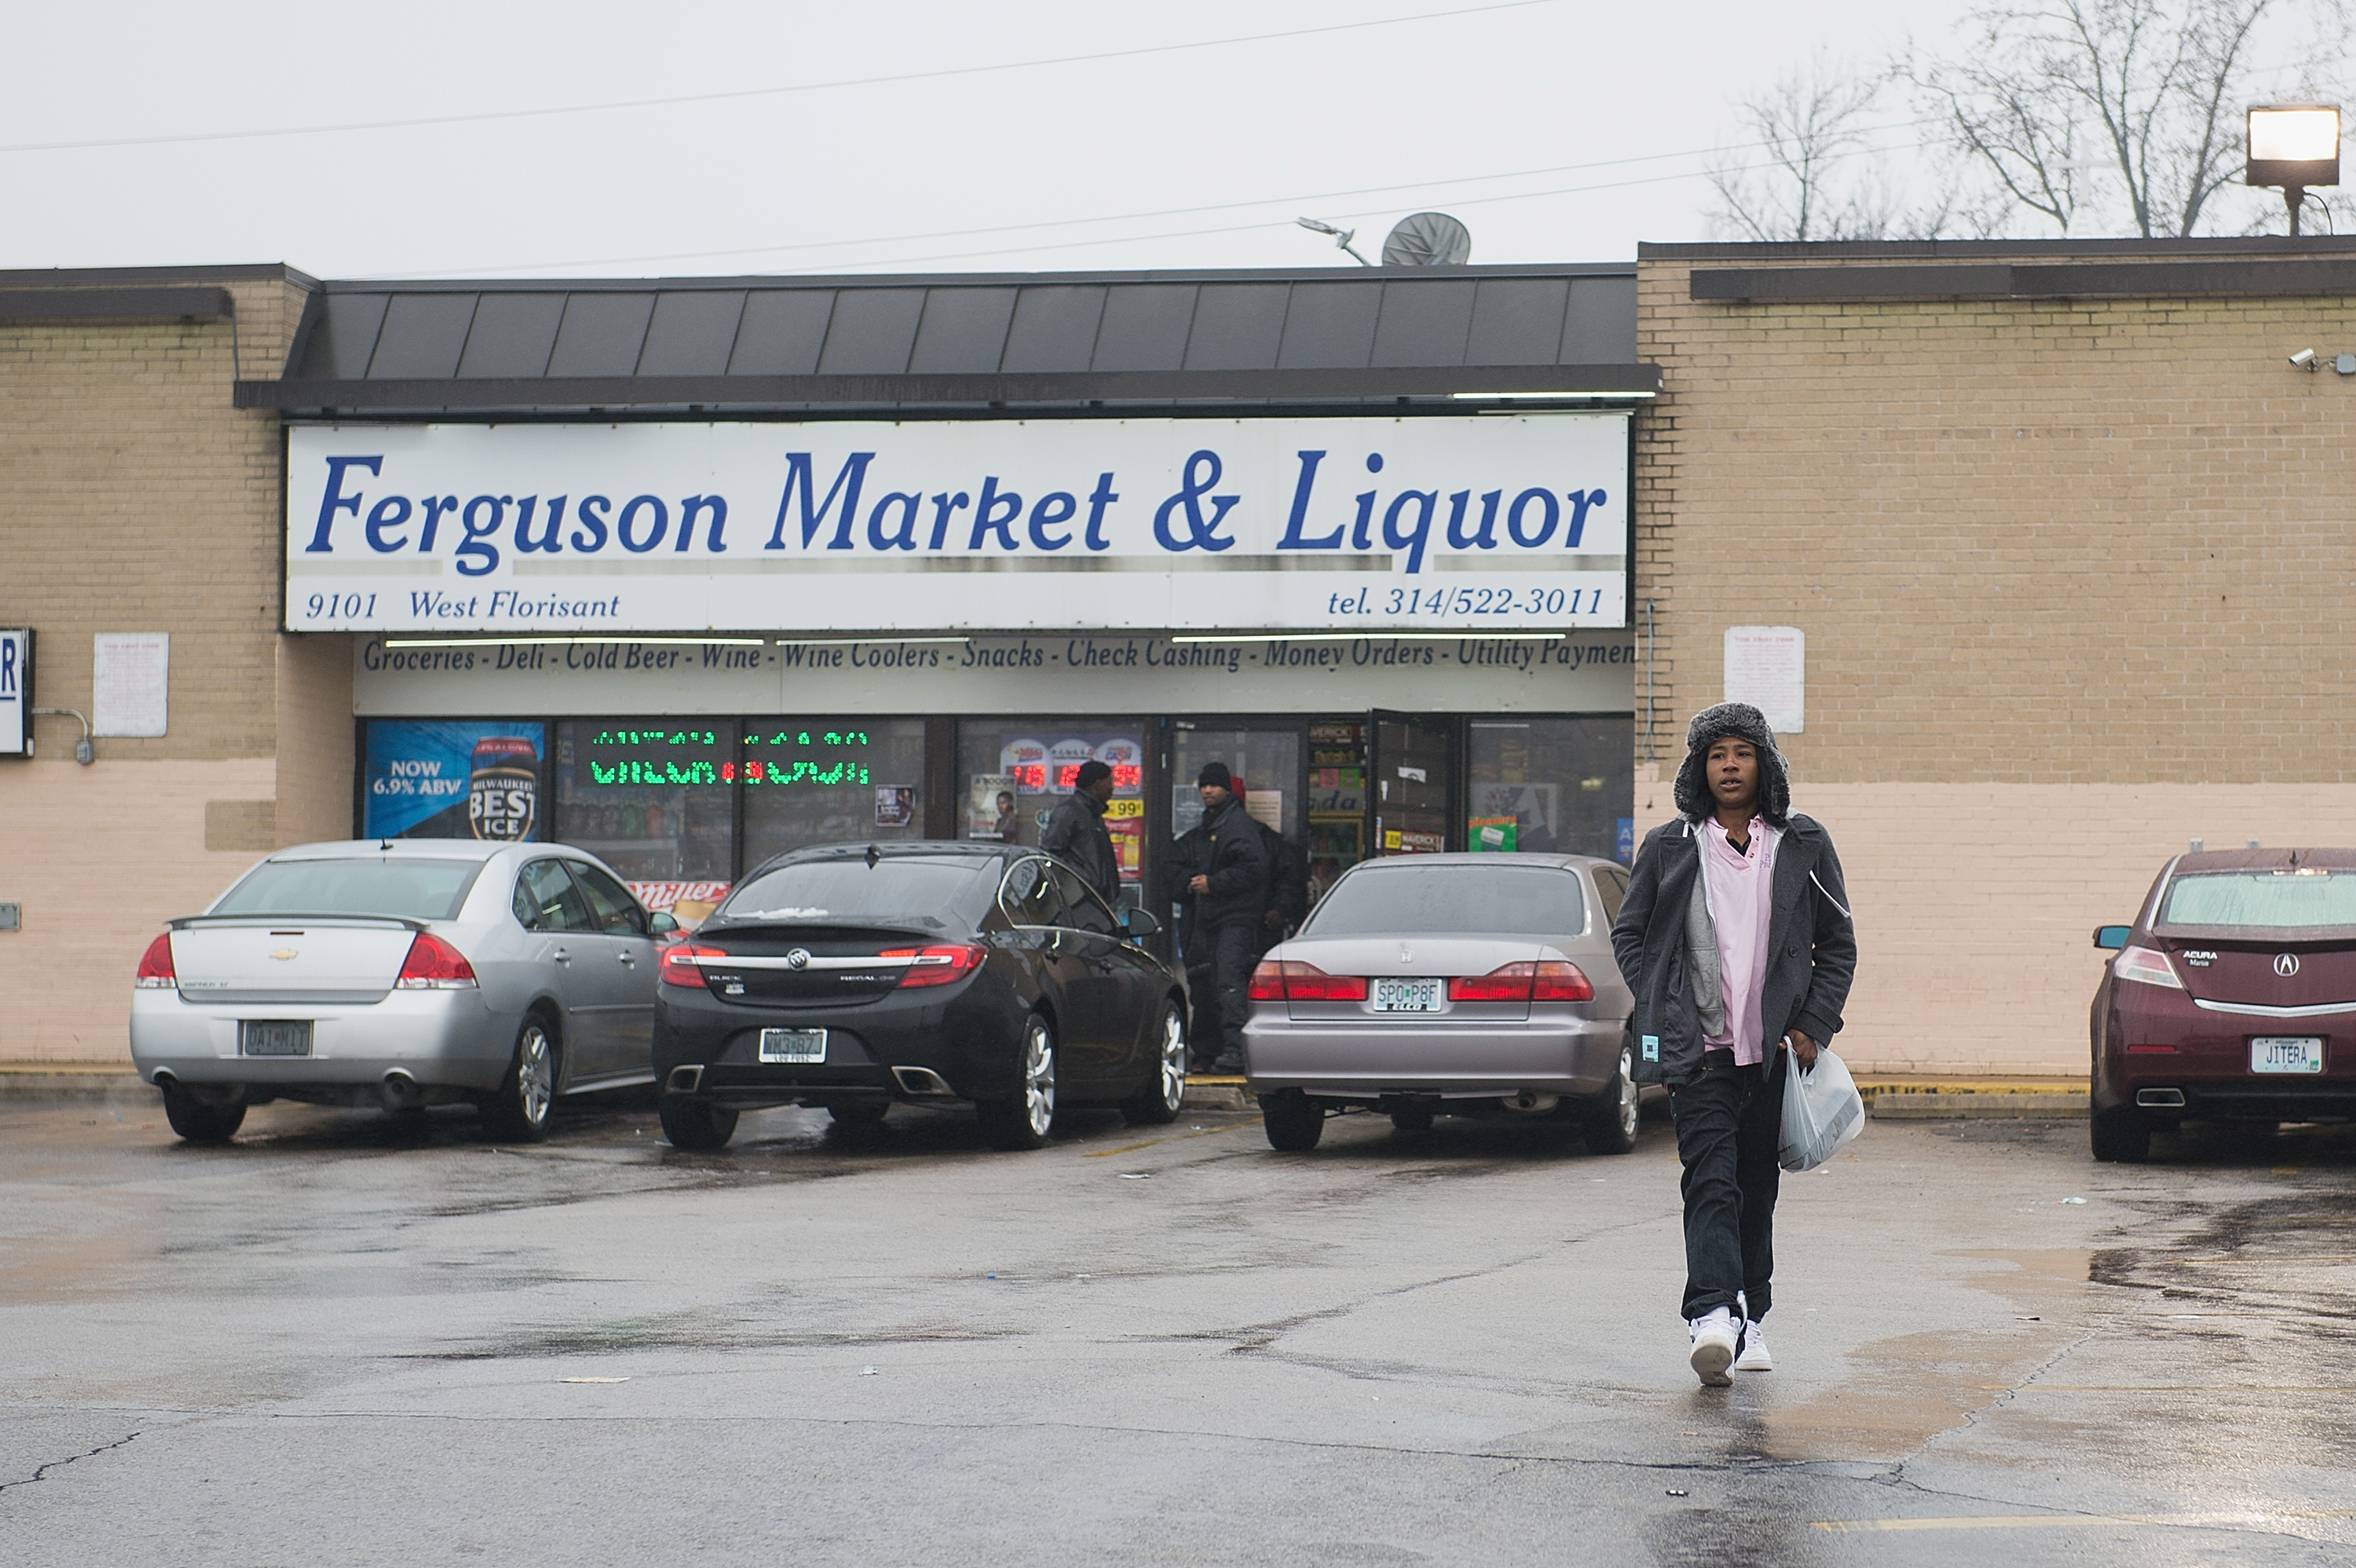 A woman walks outside the Ferguson Market and Liquor on March 13, 2017 in Ferguson, Missouri as tensions visit the city following video footage of slain 18 year-old Michael Brown in a recent documentary.